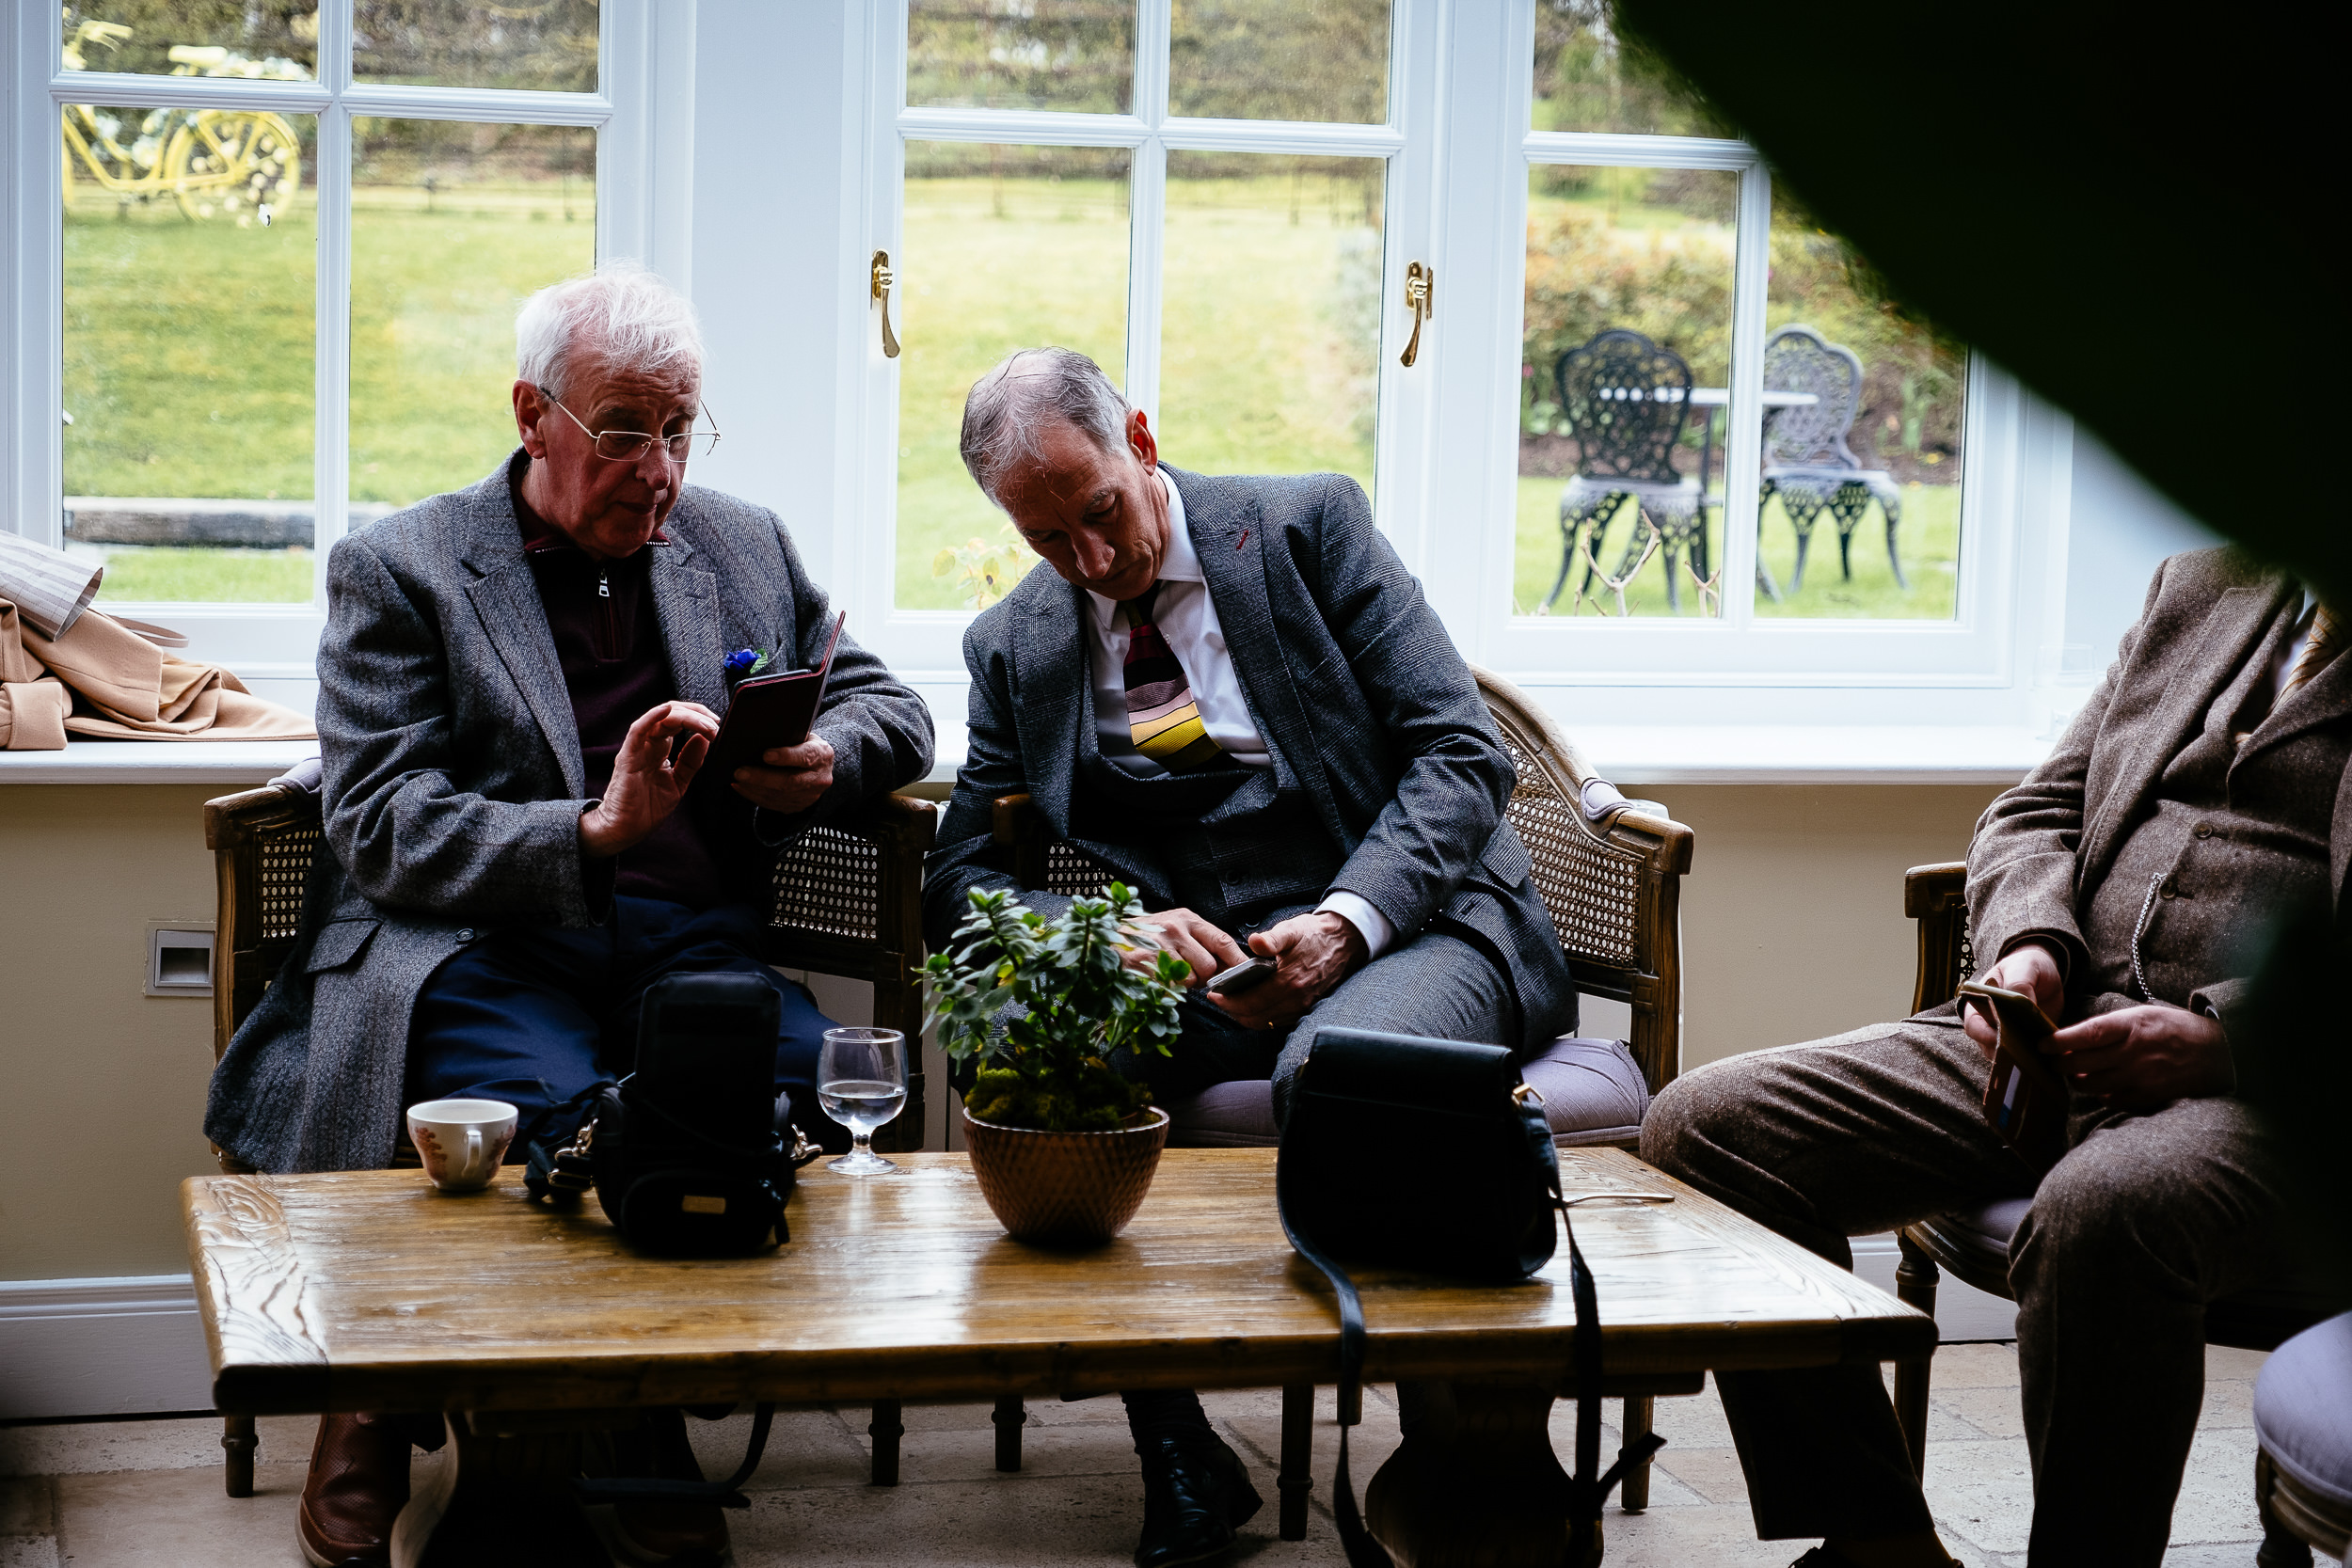 two old men checking their mobile phones